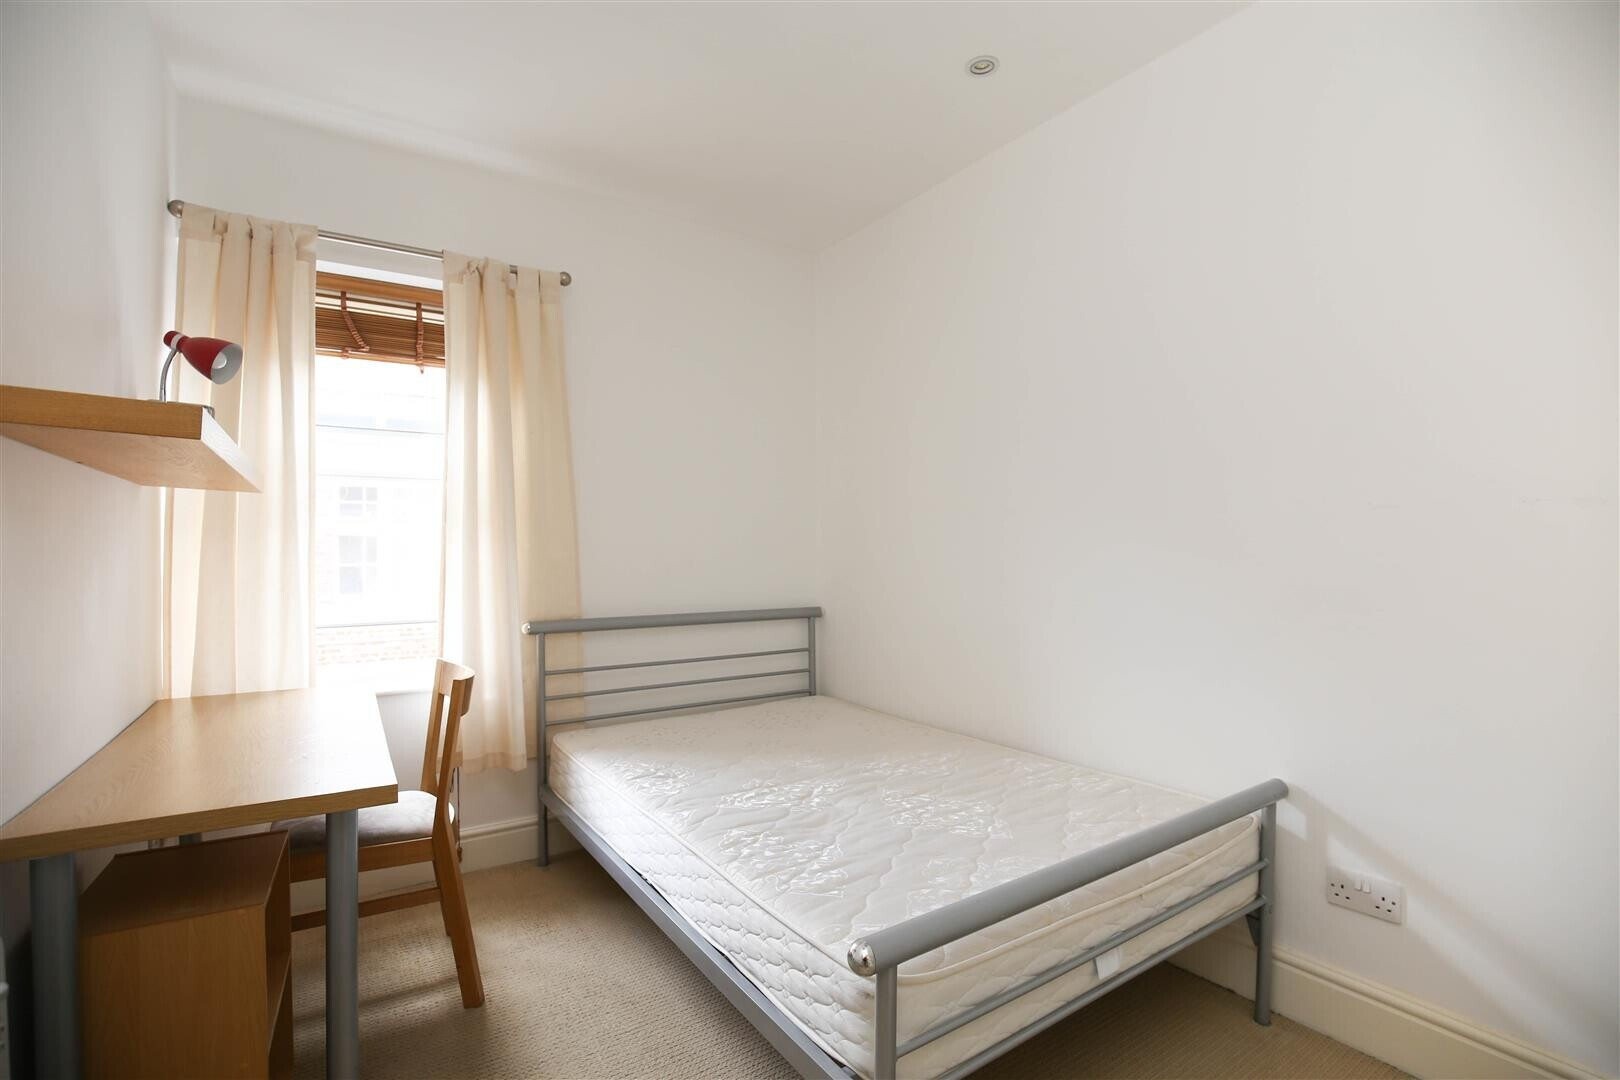 4 bedroom student house in City Centre, Newcastle